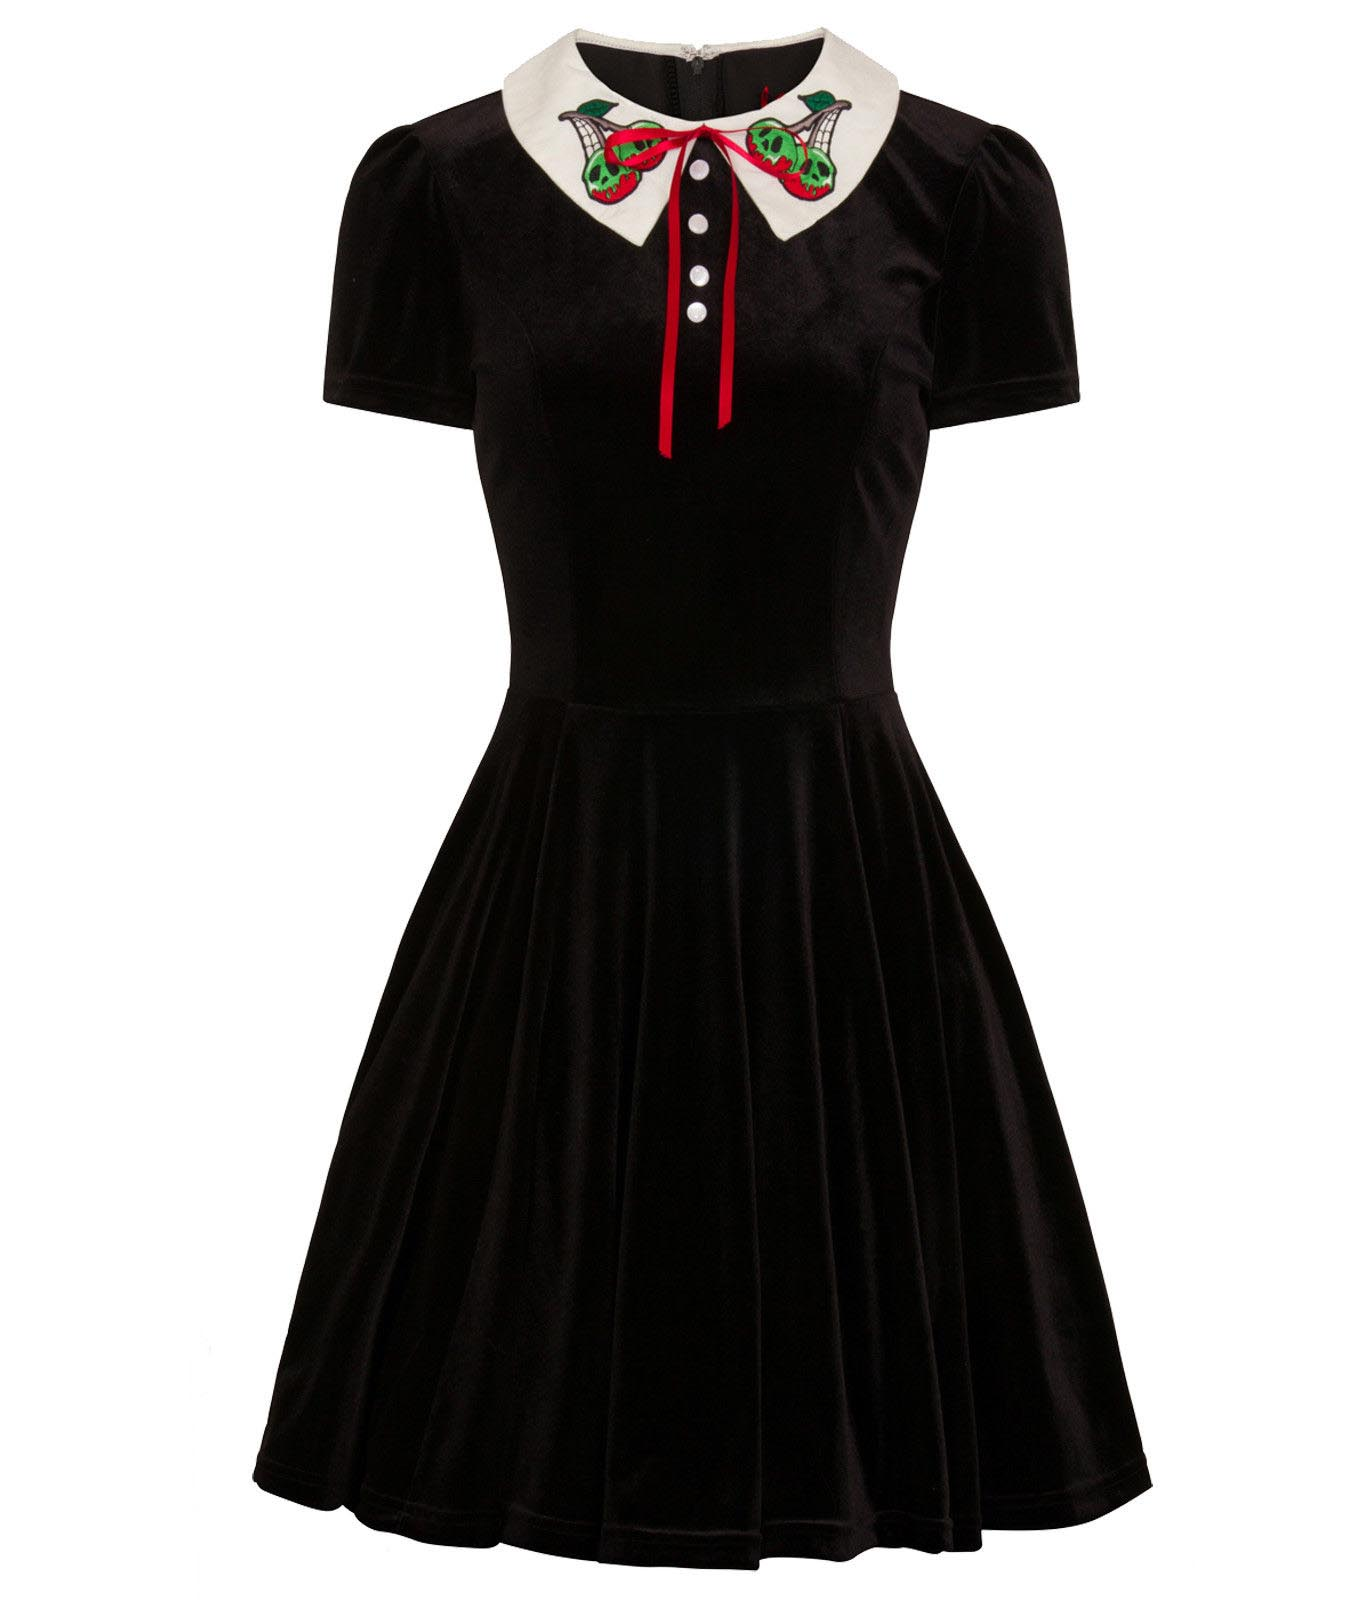 Hell-Bunny-Goth-Mini-Skater-Dress-NIGHTSHADE-Poison-Cherry-Black-Velvet-All-Size thumbnail 7